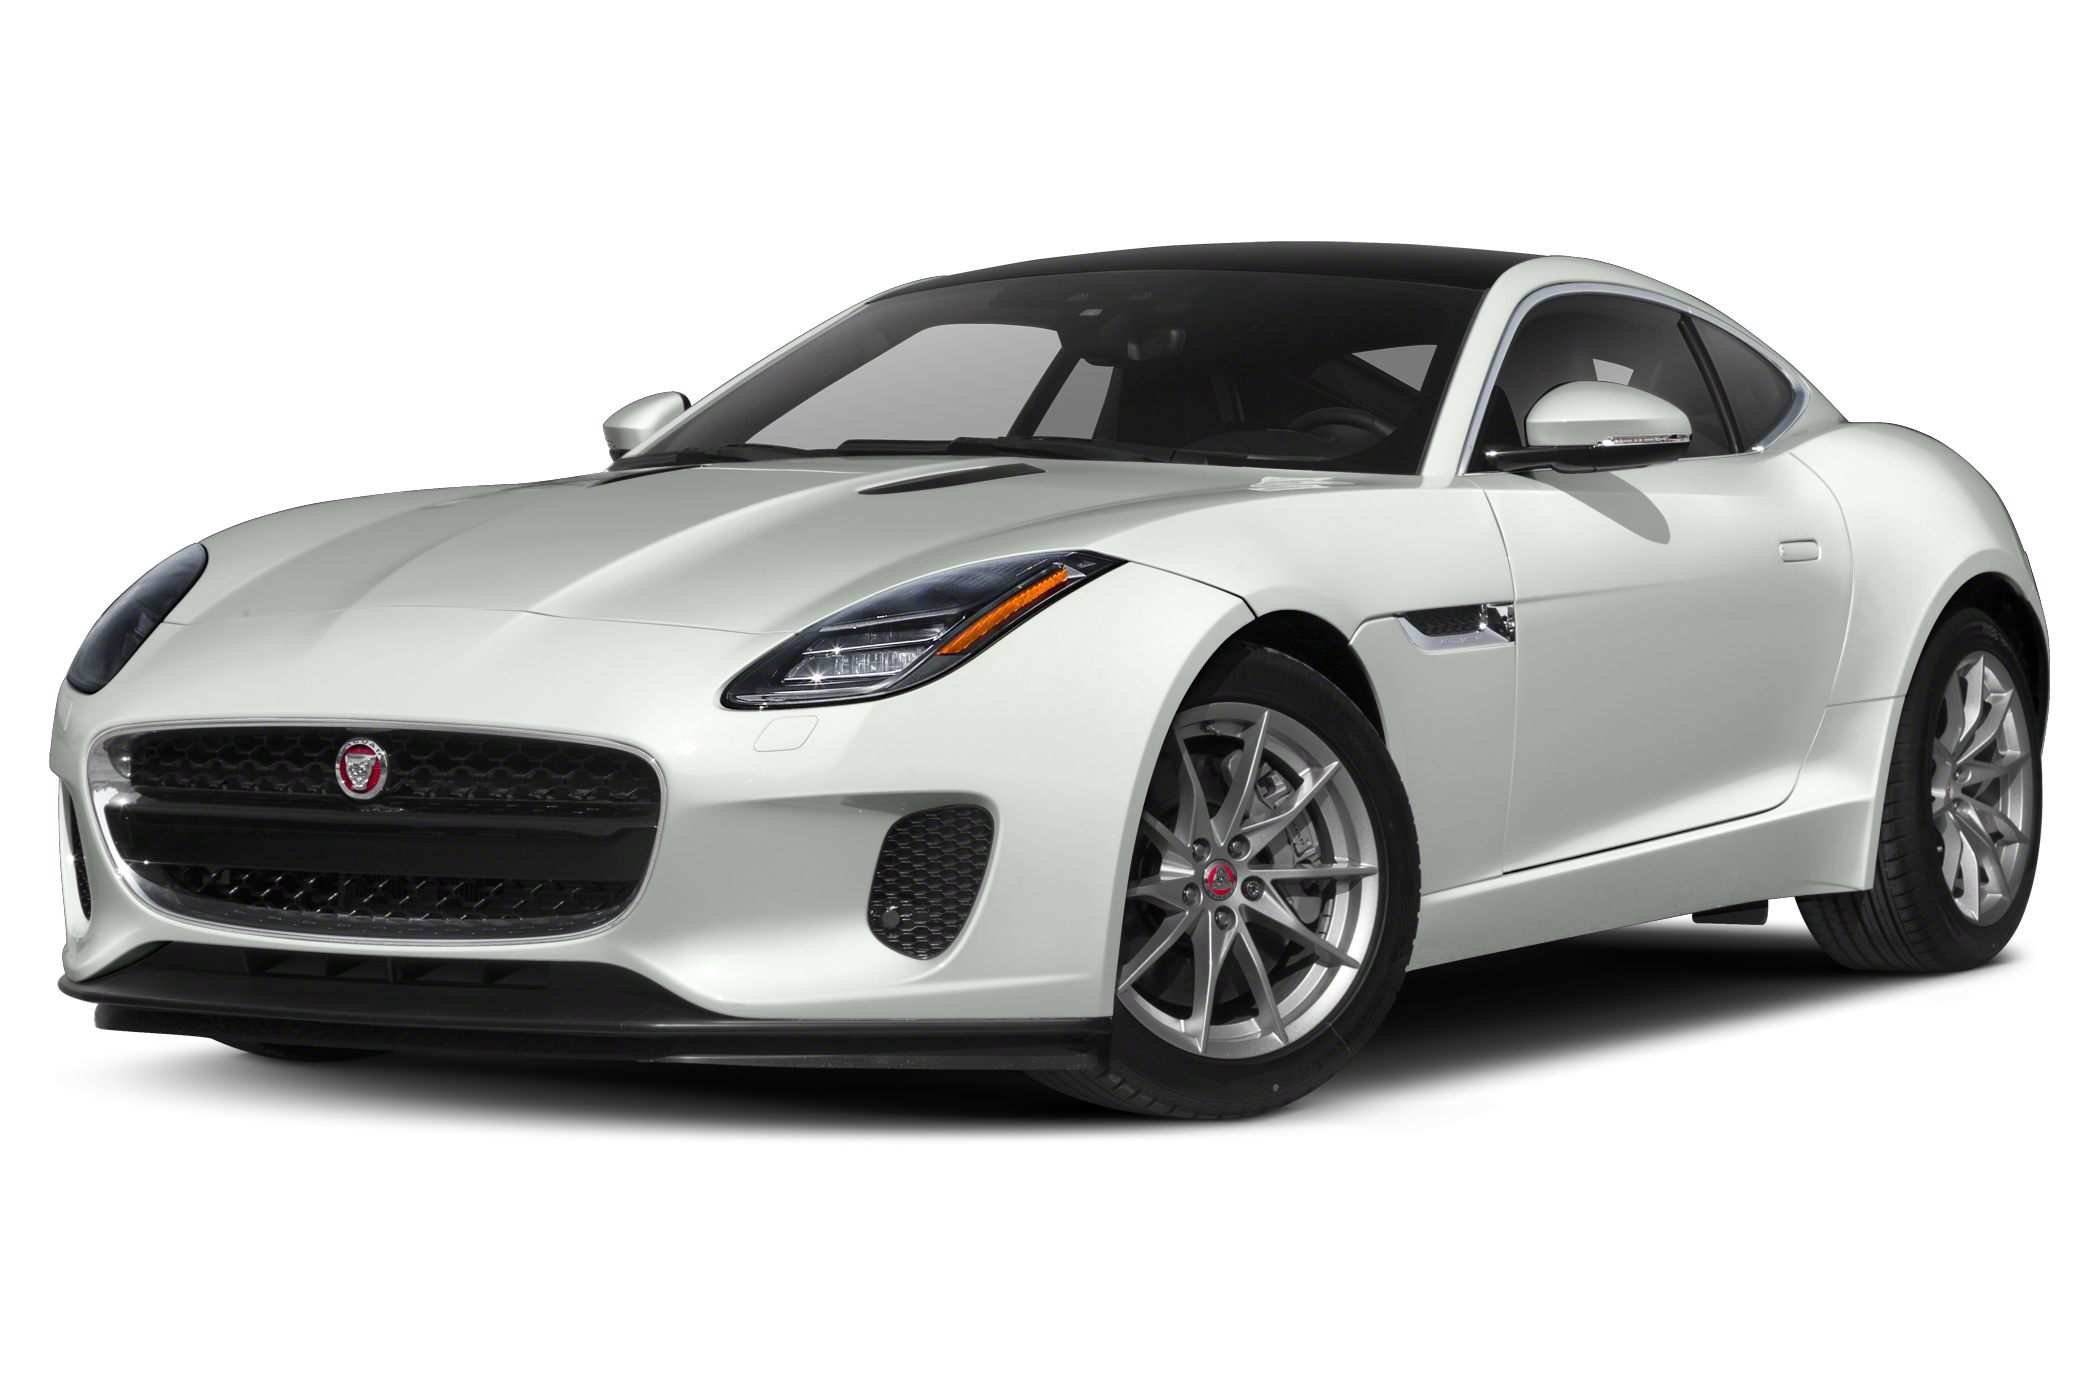 92 New 2020 Jaguar F Type Msrp Pricing